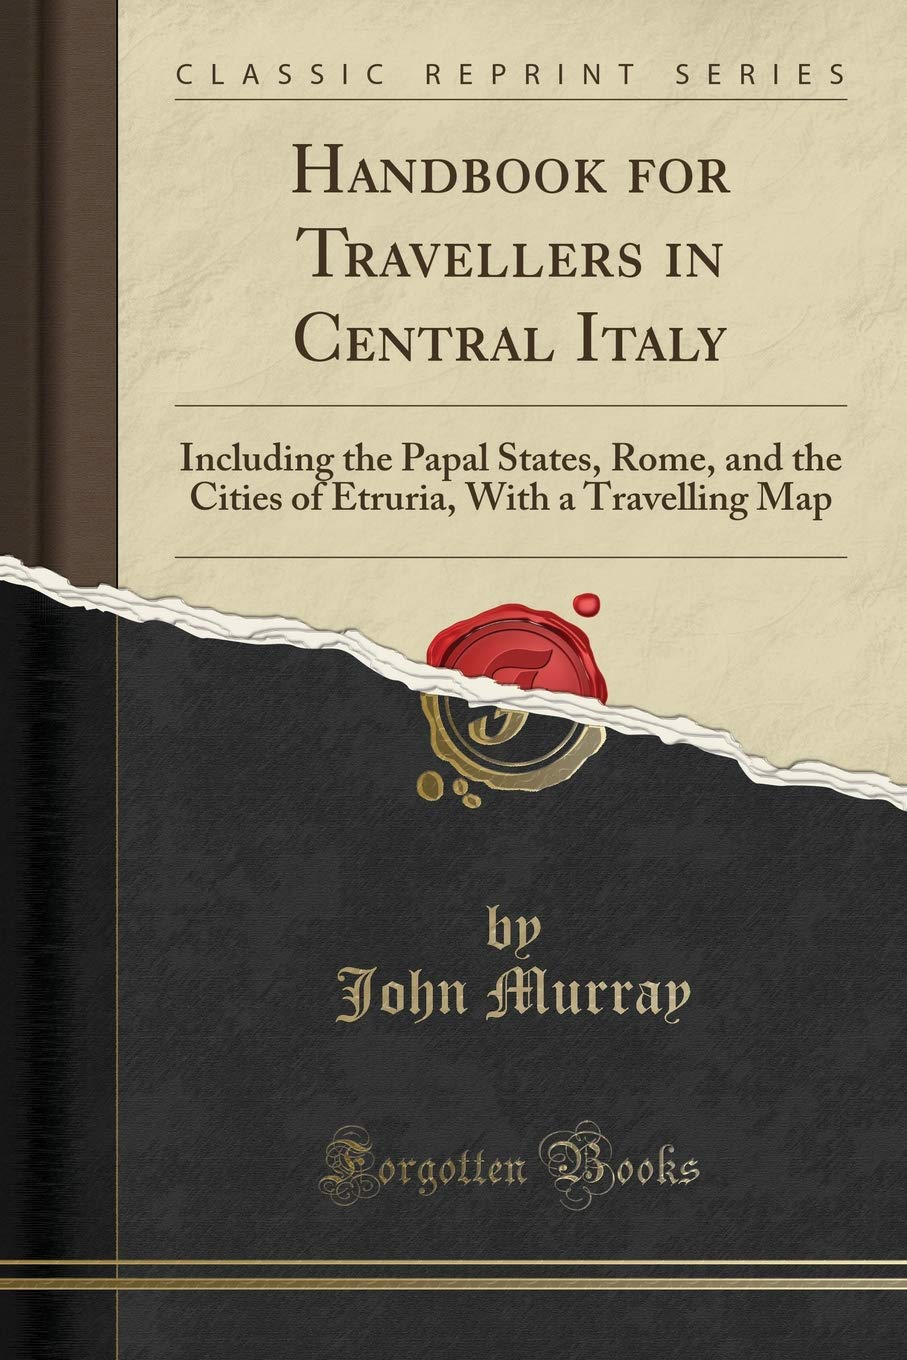 Map Of Central Italy Cities.Handbook For Travellers In Central Italy Including The Papal States